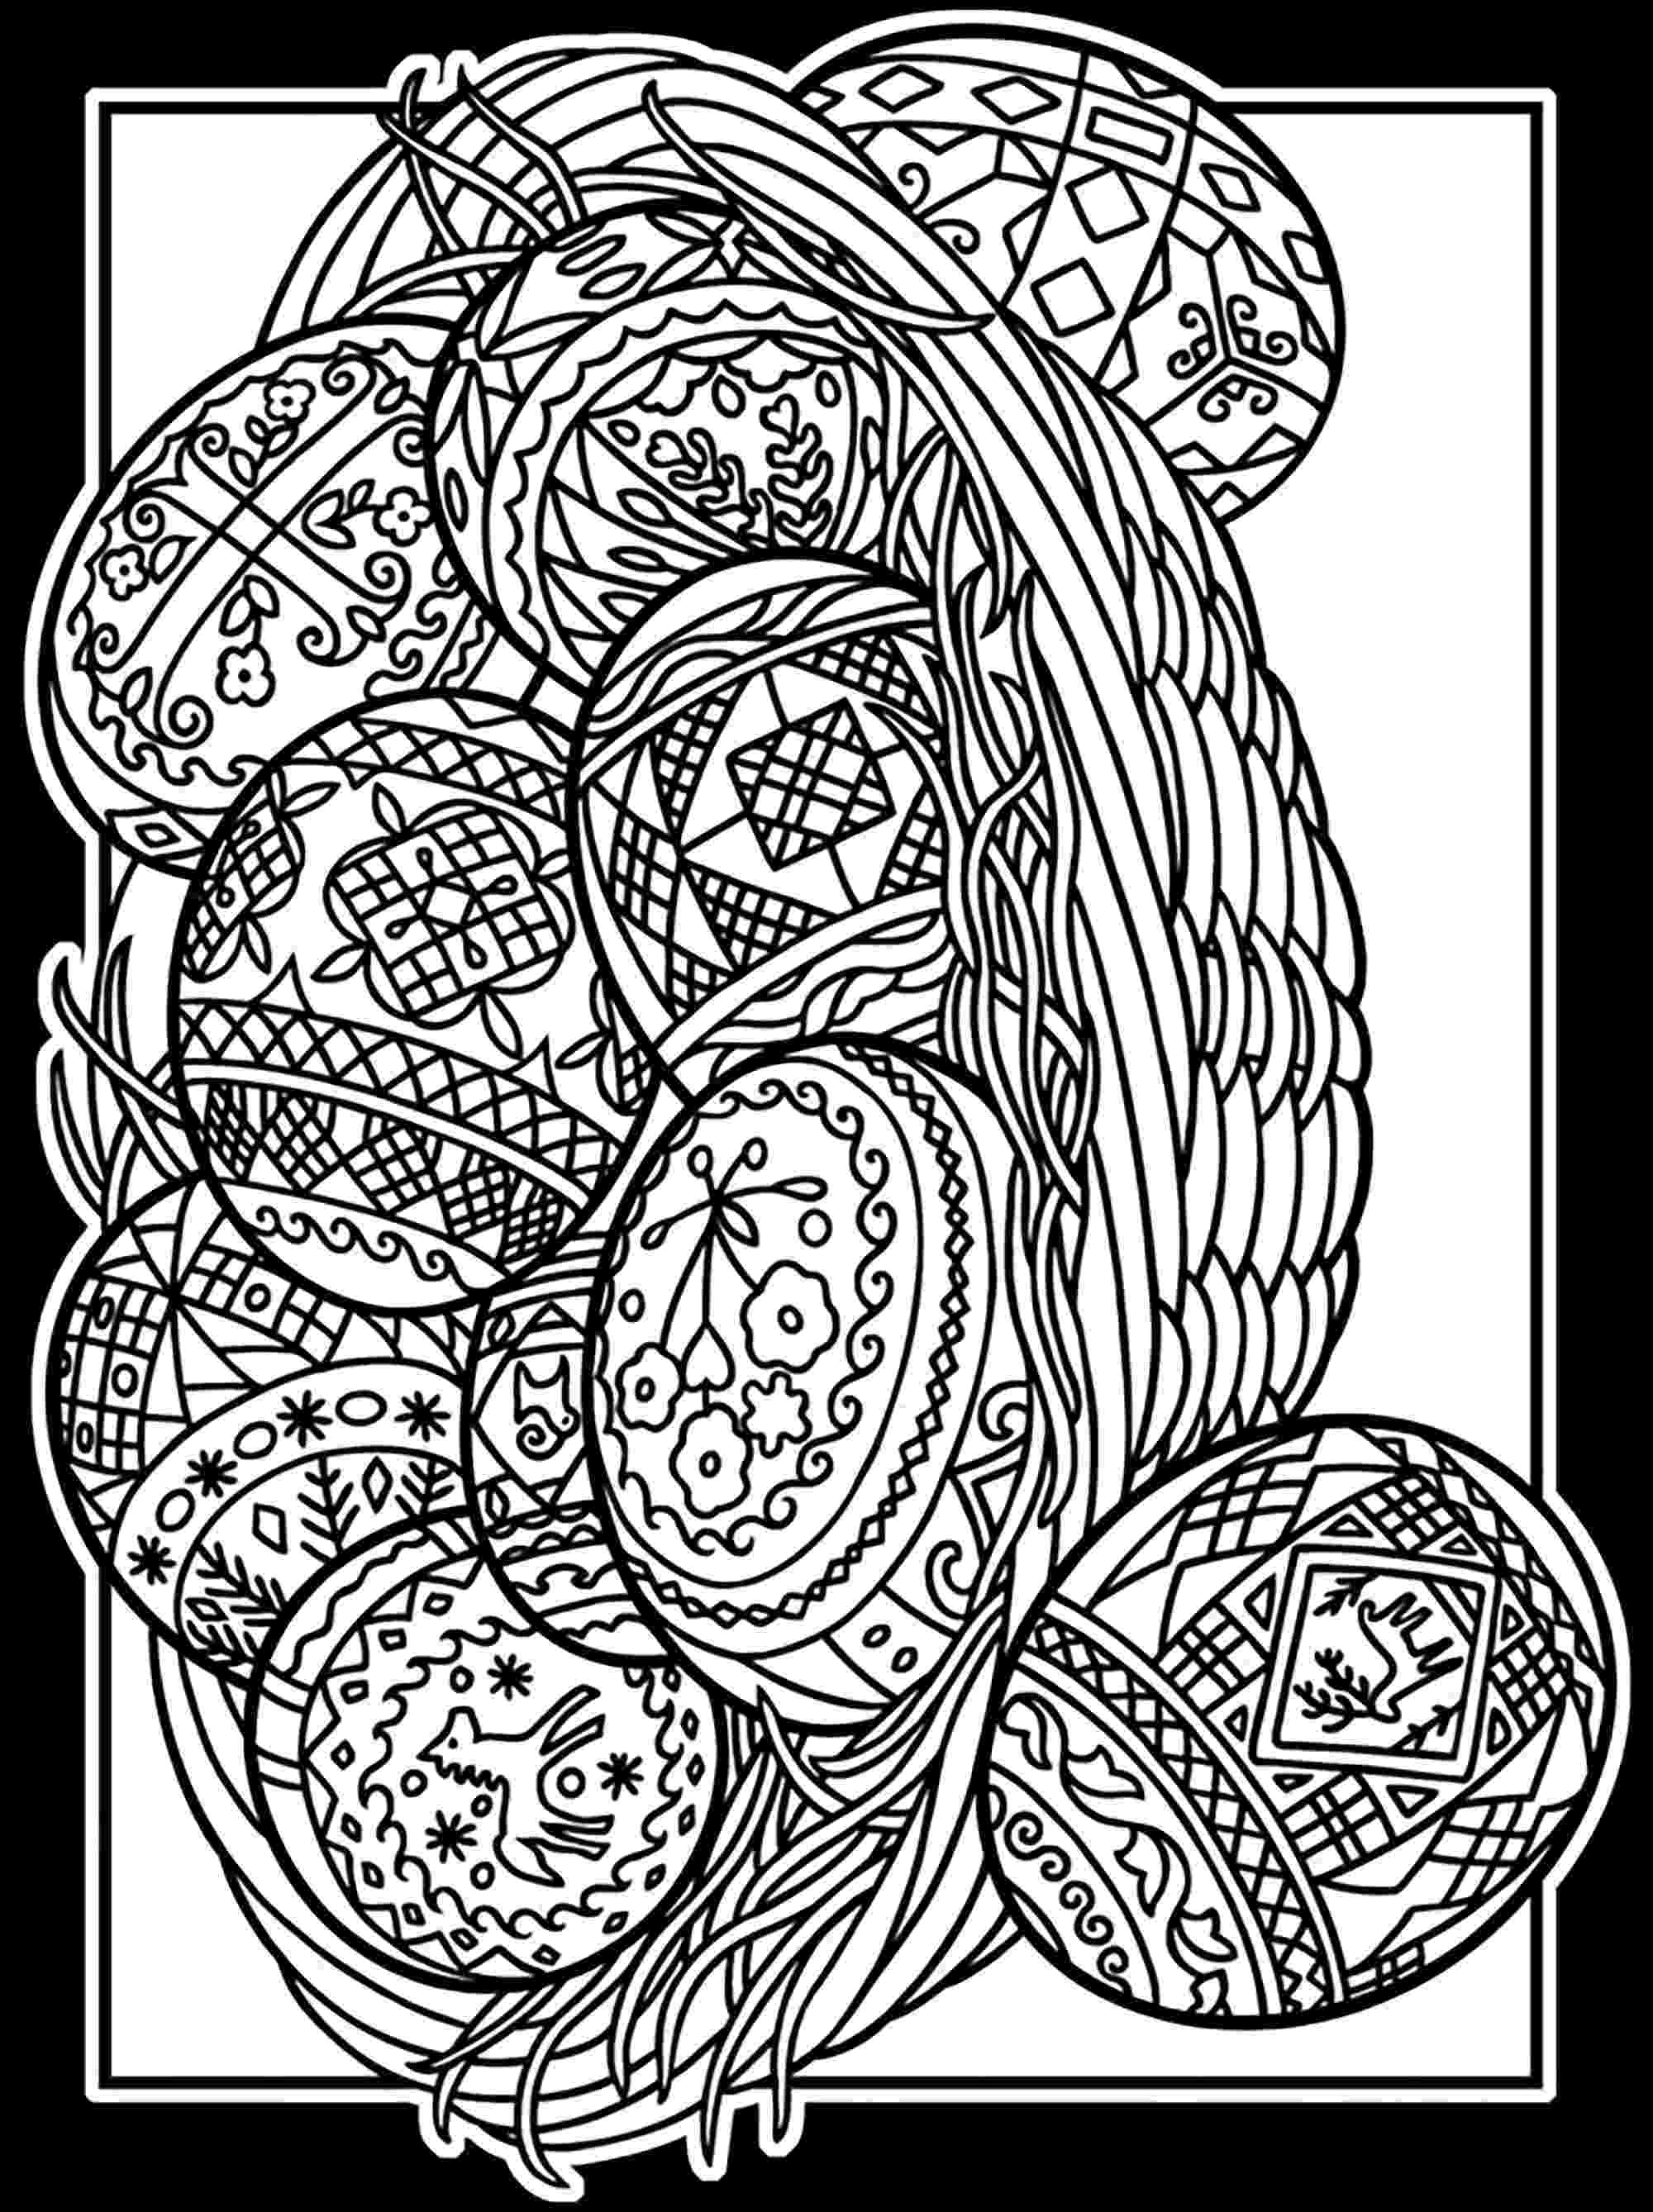 easter colouring pages printable for adults easter eggs to print and color easter adult coloring pages adults colouring printable pages easter for